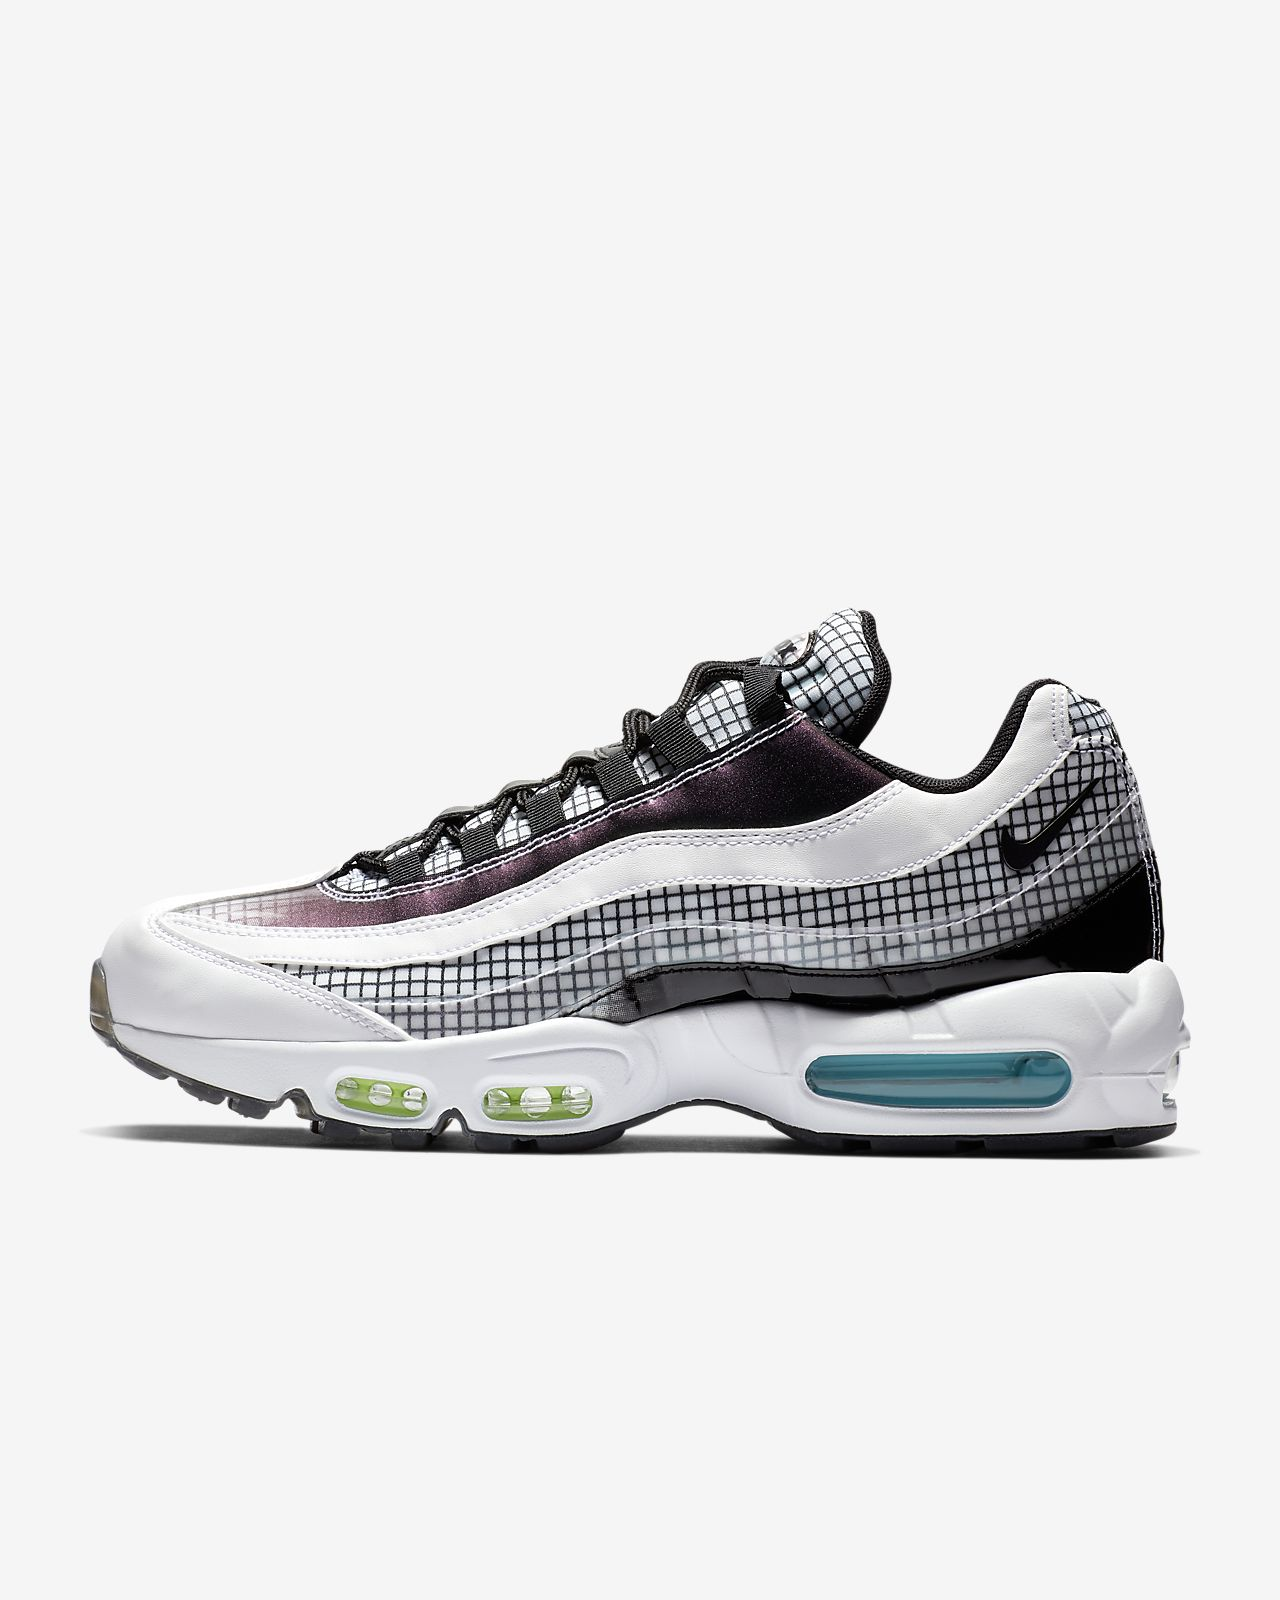 on sale 1867f f46a2 ... Nike Air Max 95 LV8 Men s Shoe